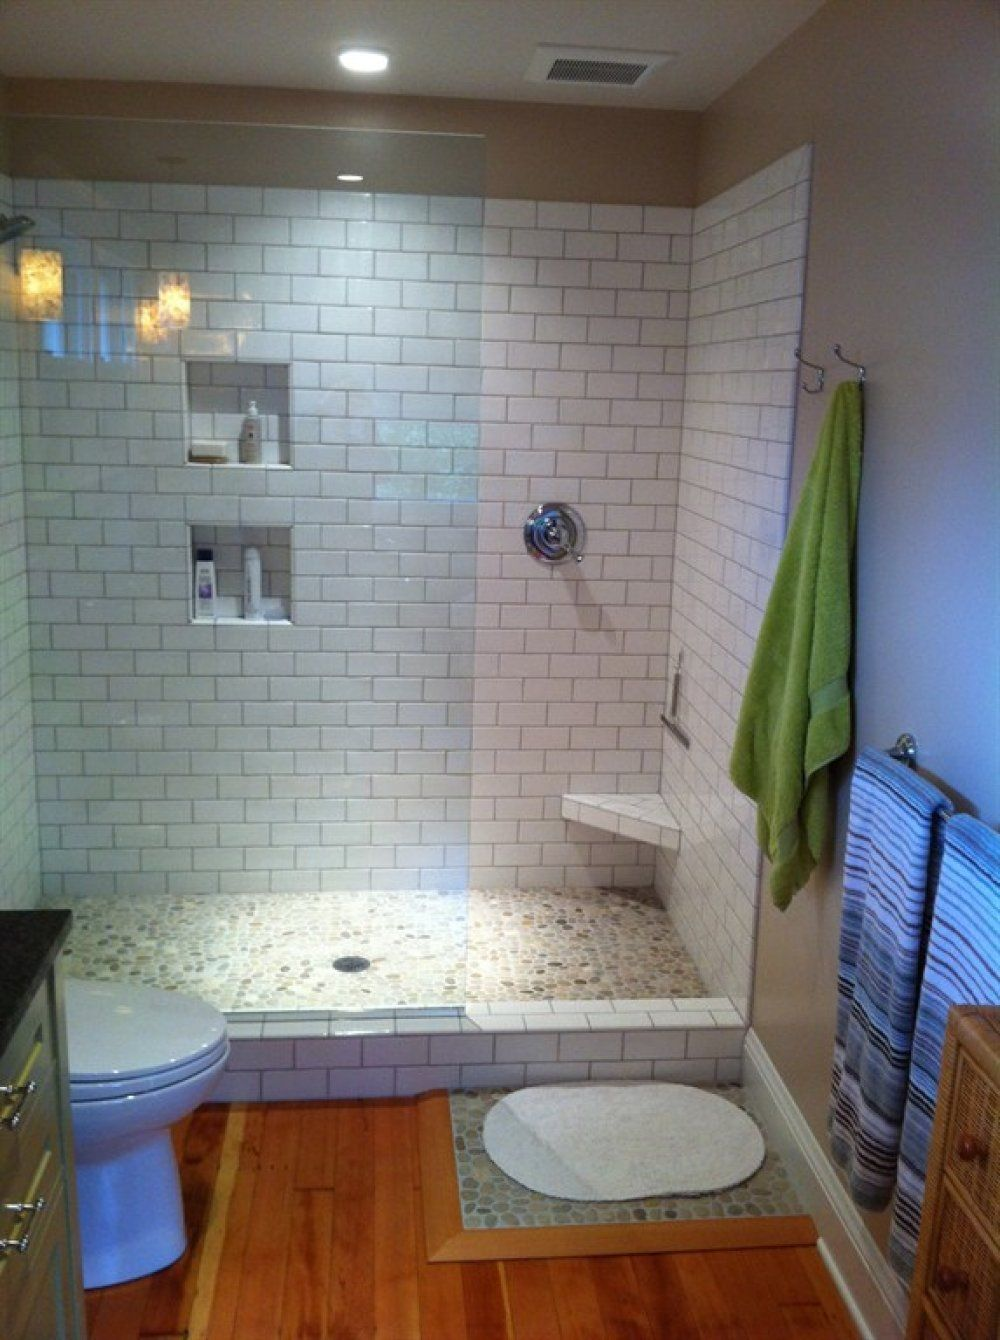 Find This Pin And More On Remodel Ideas By Cappsjm. These Doorless Walk In  Shower ...